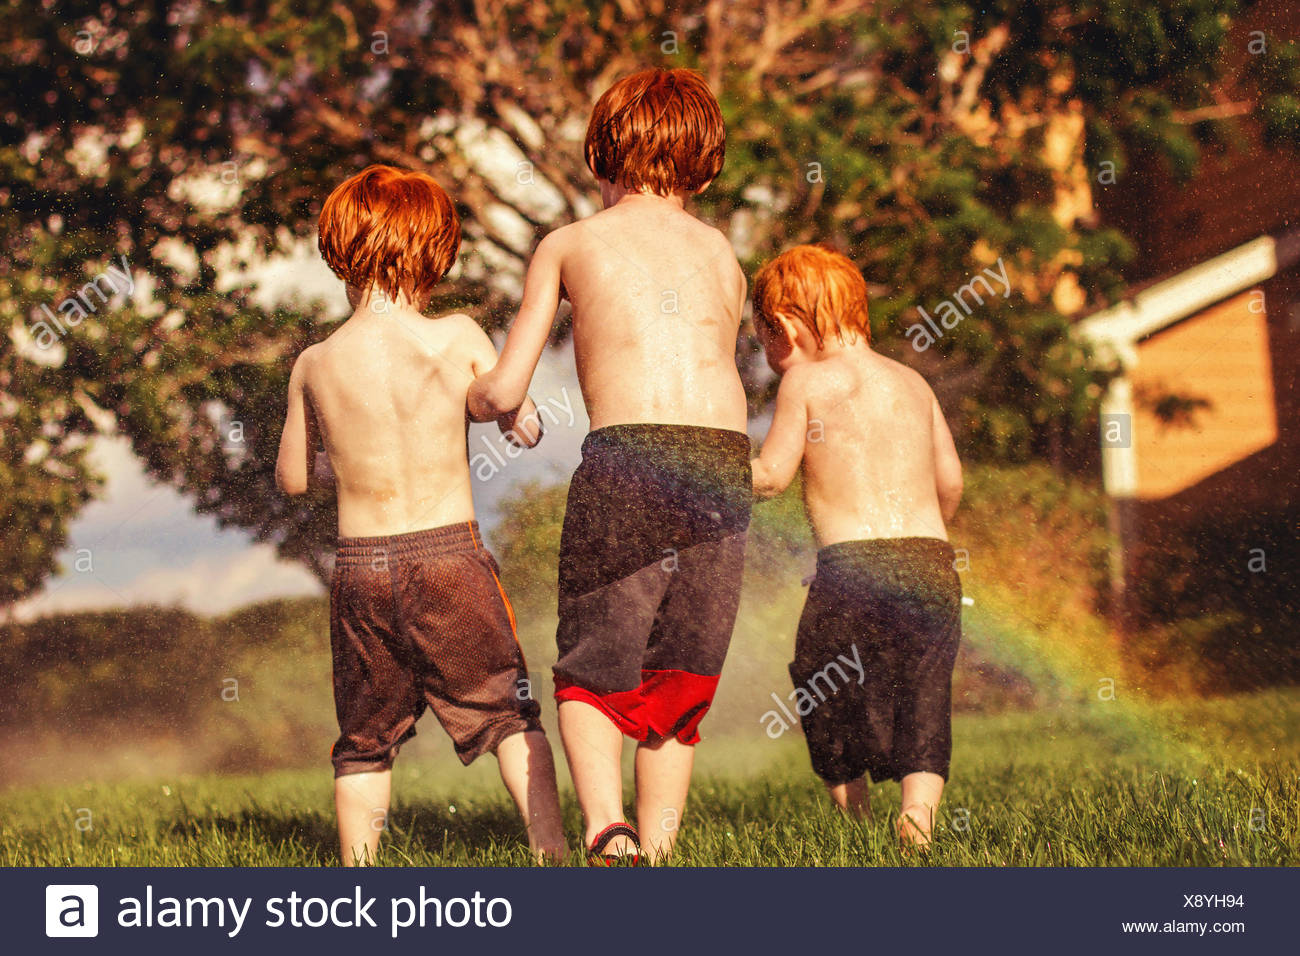 Three young brothers playing in water sprinklers - Stock Image